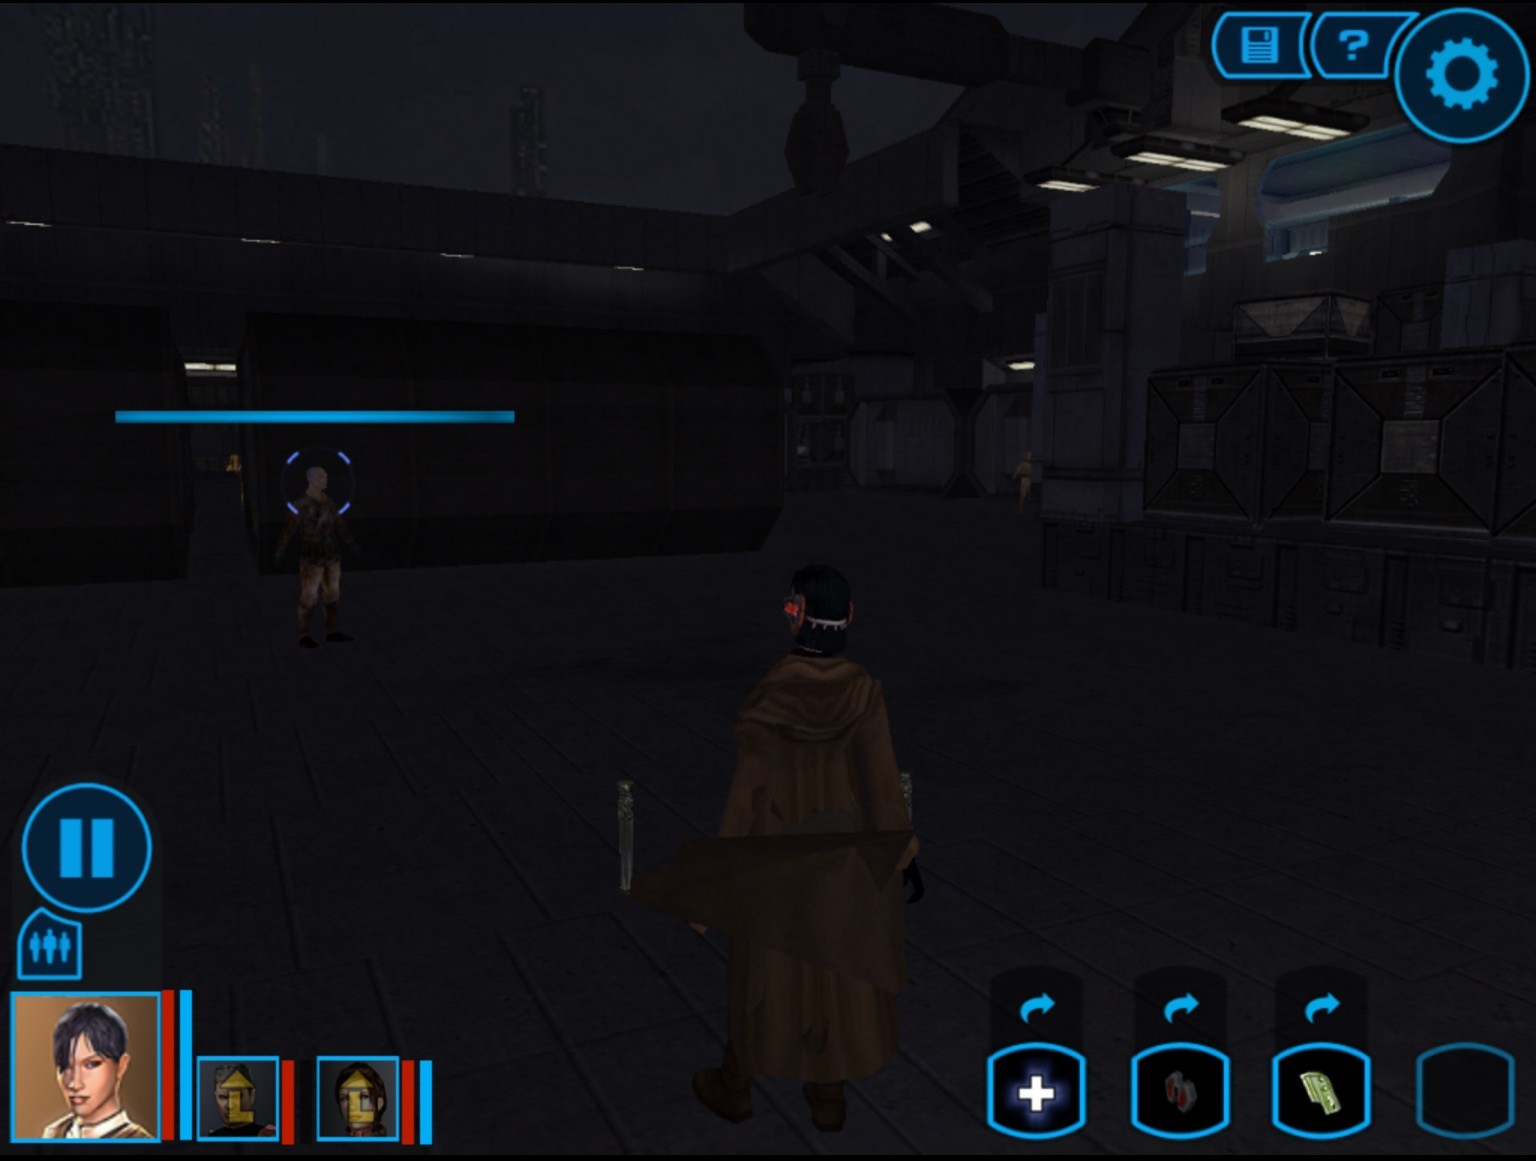 Star Wars: Knights of the Old Republic II Windows game